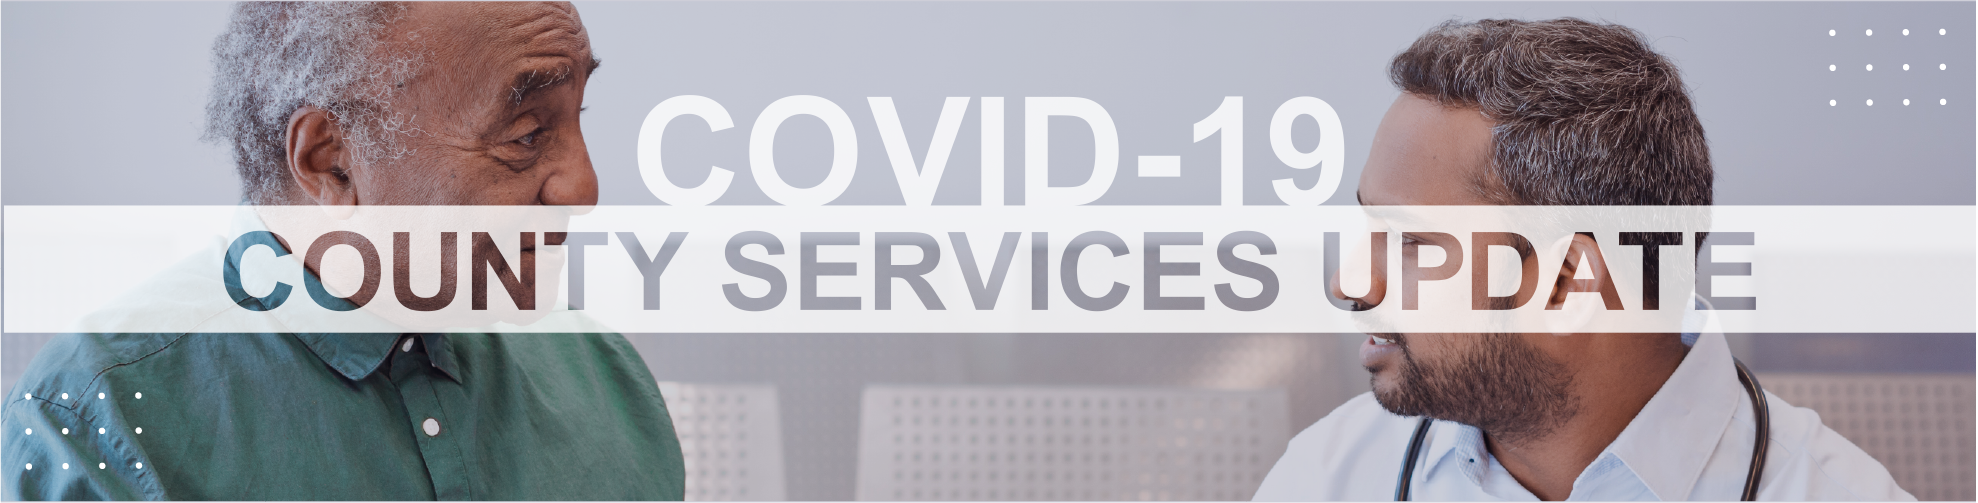 COVID-19 County Services Update